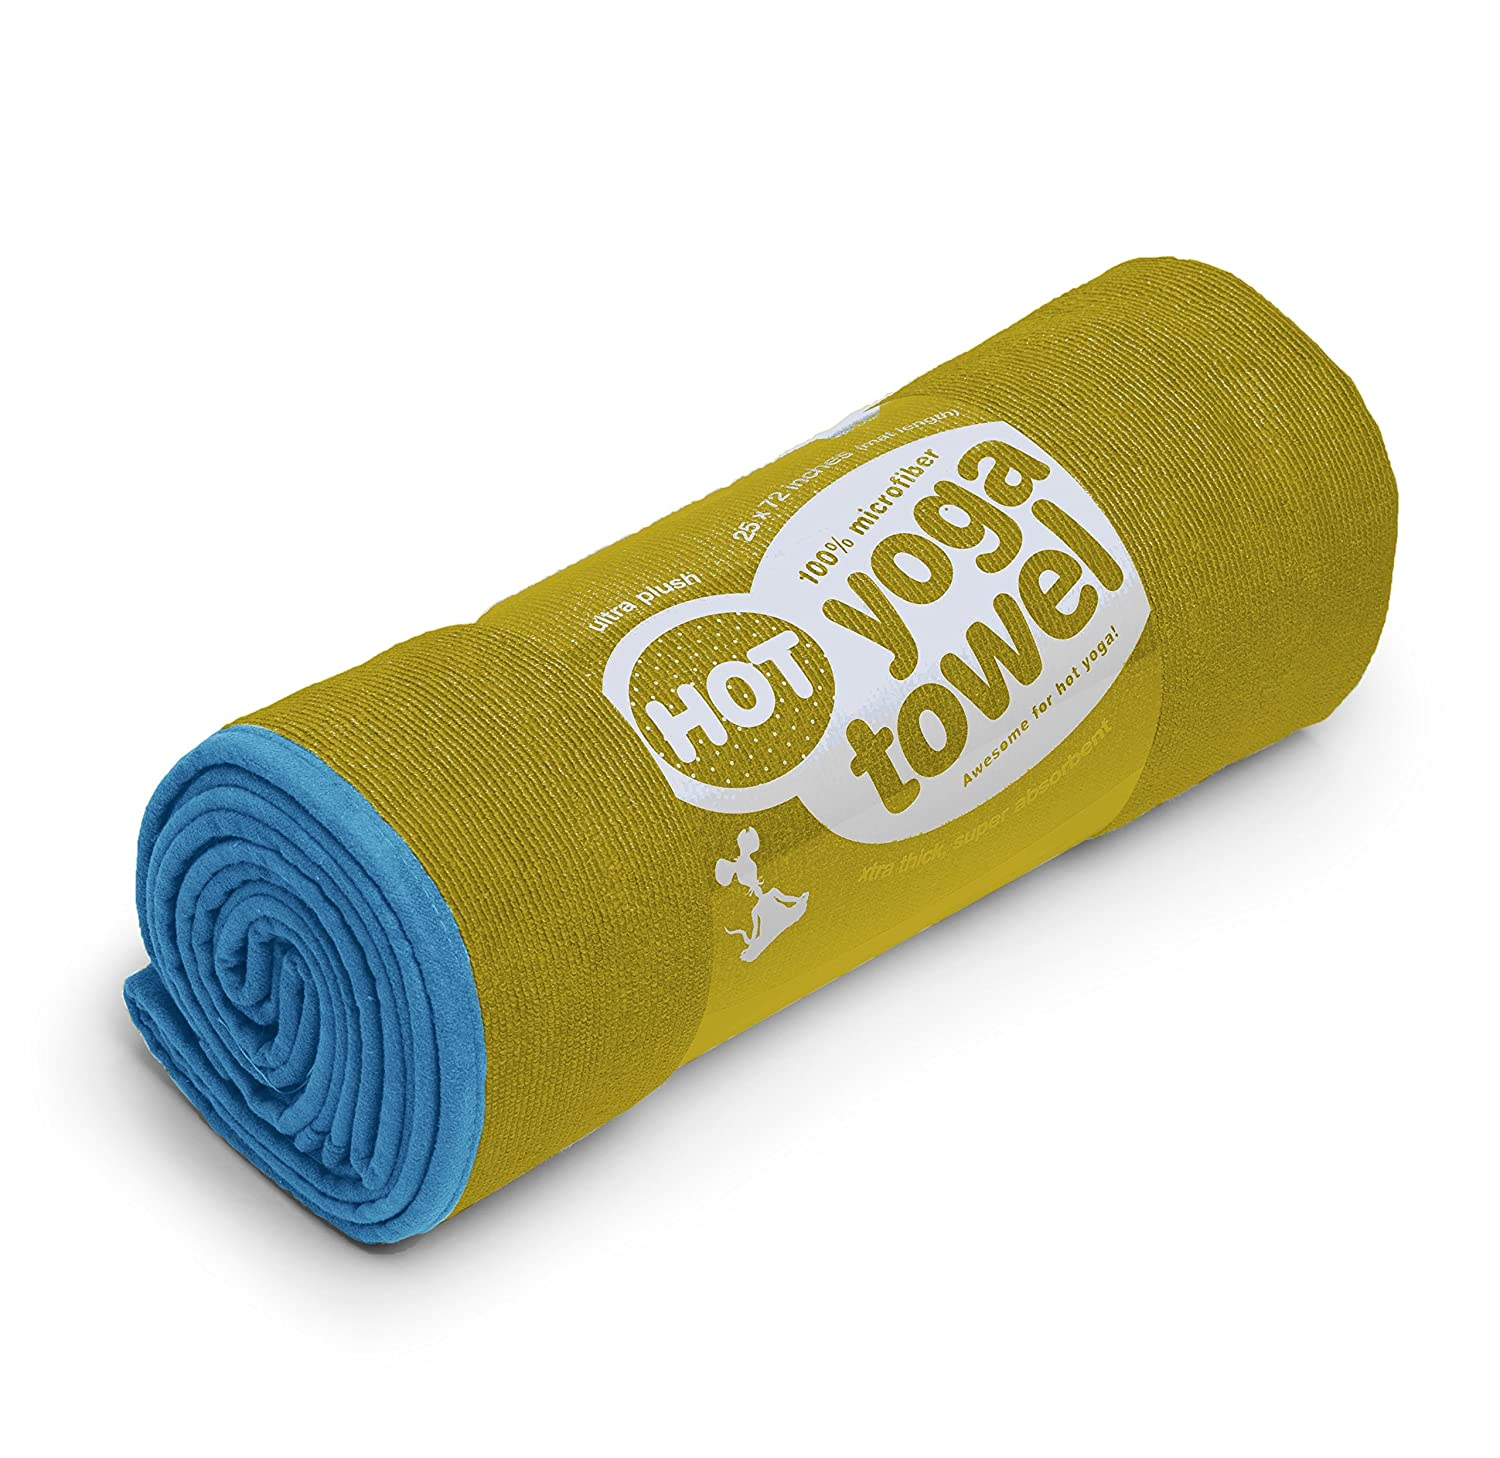 non with store mesh yoga product carrying long cover slip inch fitness towel hot mat bag exercise bikram x blankets for